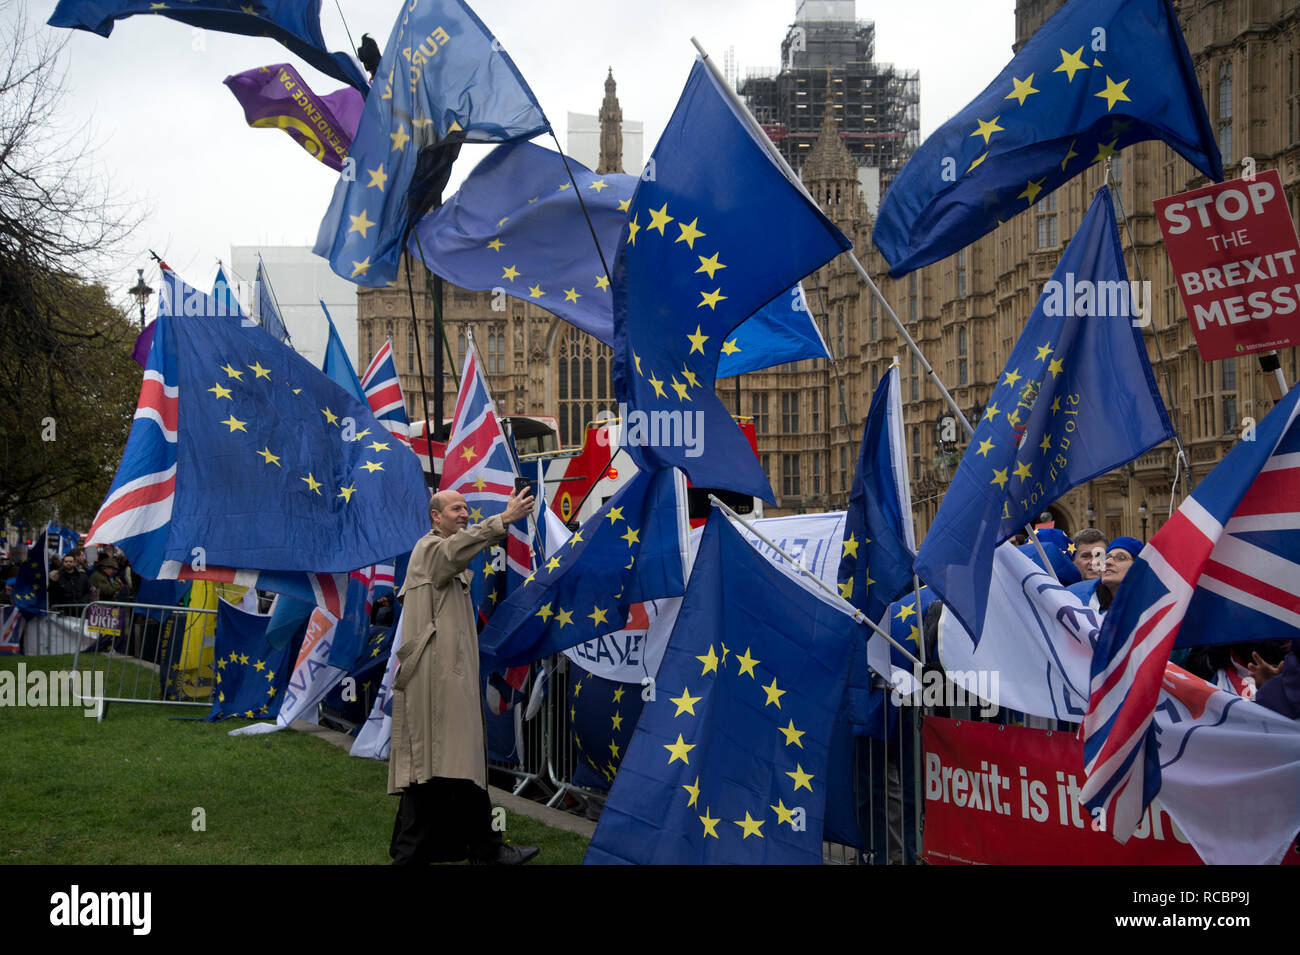 Westminster, London, UK. January 15th 2019. Demonstrations outside the Houses of Parliament as MPS vote on PM Theresa May's Brexit deal. A sea of European flags from Remainers. Credit: Jenny Matthews/Alamy Live News - Stock Image